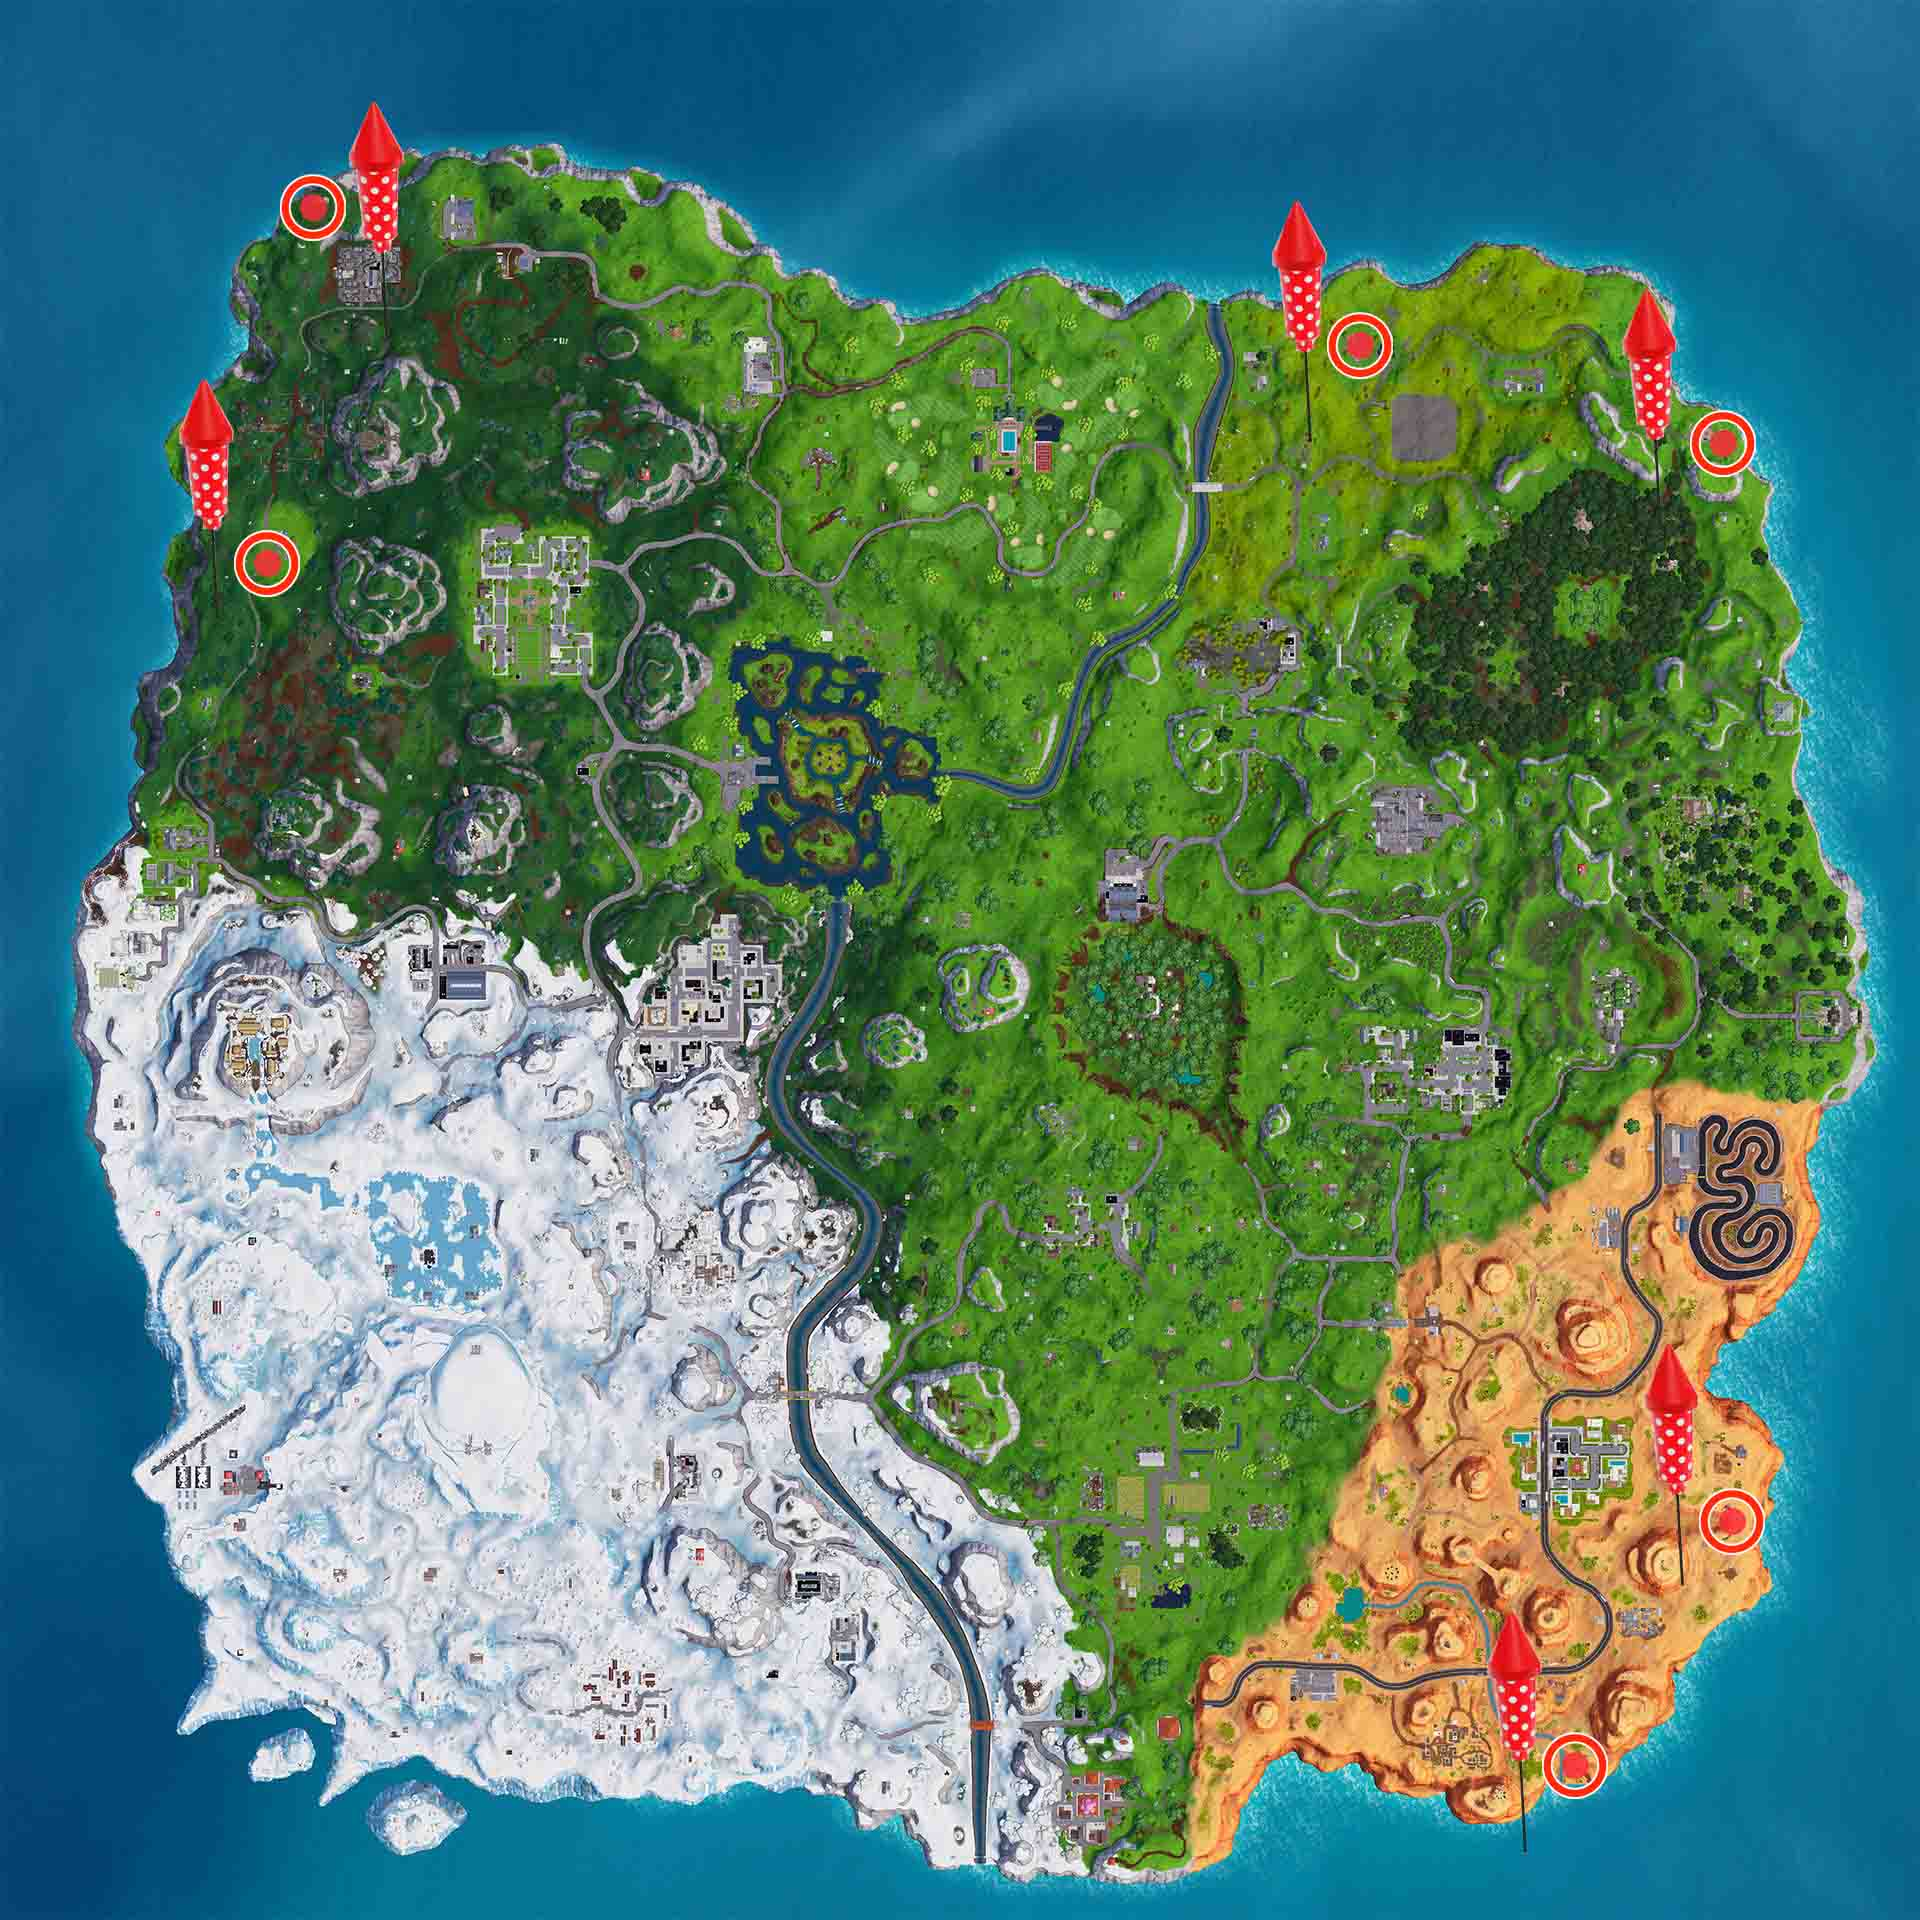 Lanza Fuegos Artificiales Fortnite mapa